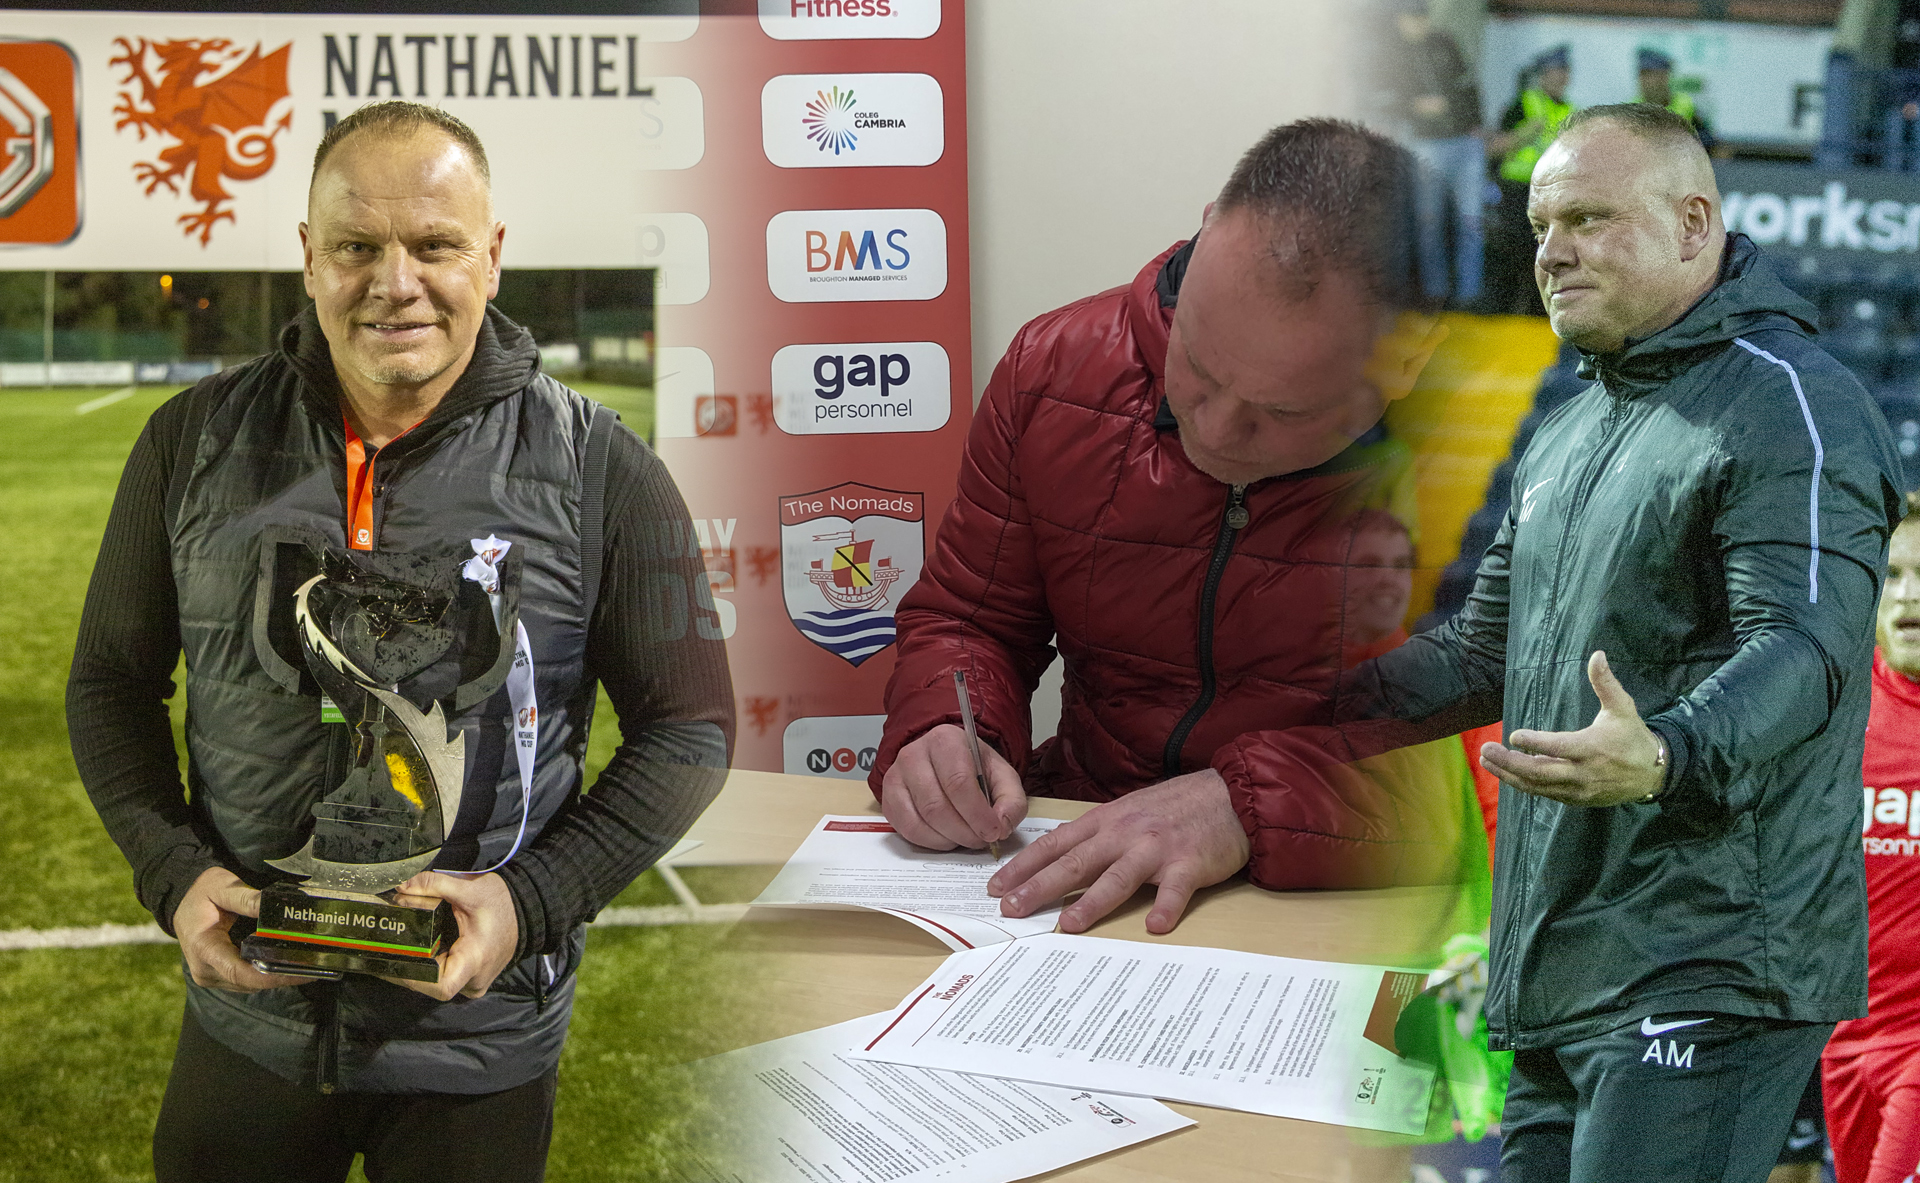 Andy Morrison has signed a new contract with Connah's Quay Nomads until the end of the 2021/22 season.